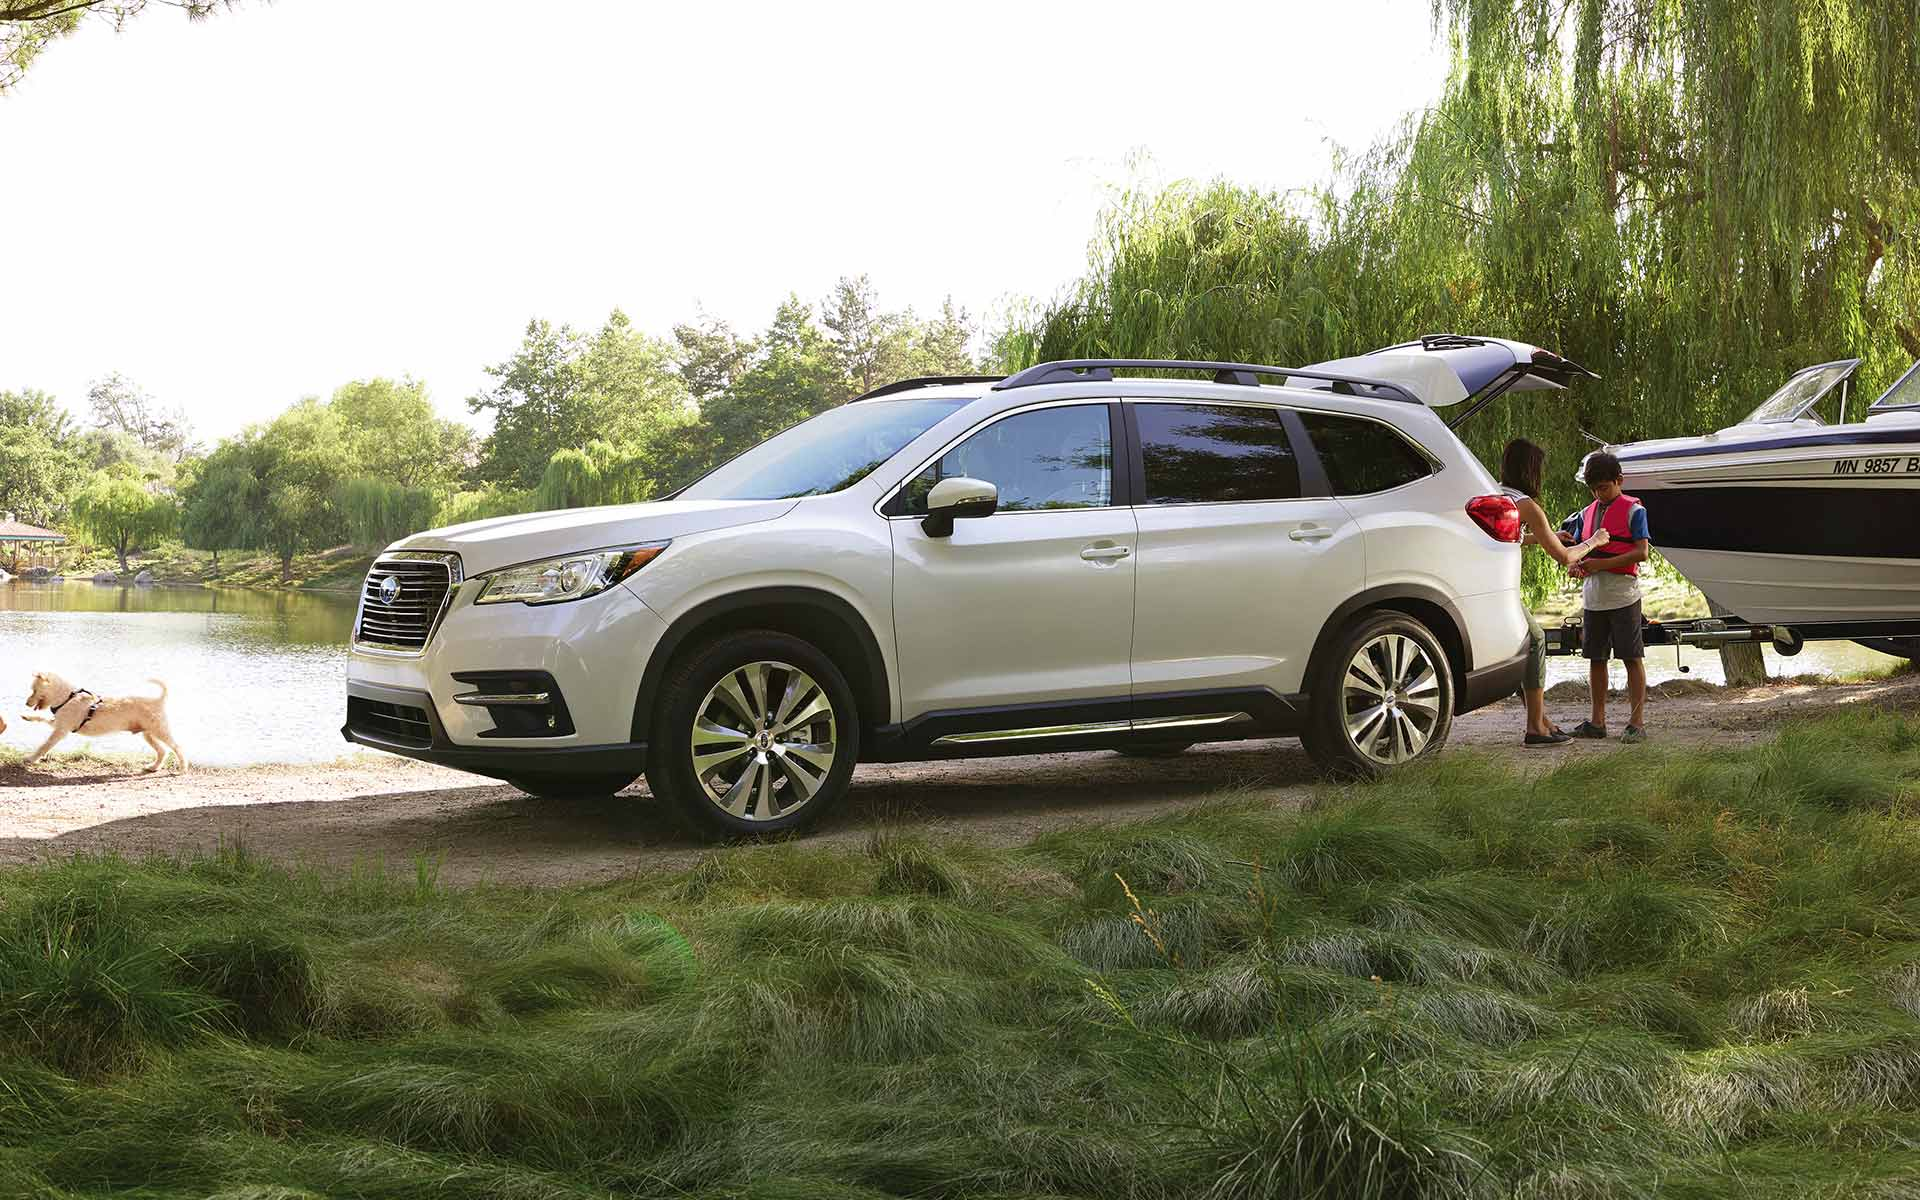 72 The New 2019 Kia Sorento Vs Subaru Ascent Release Date And Specs Exterior with New 2019 Kia Sorento Vs Subaru Ascent Release Date And Specs